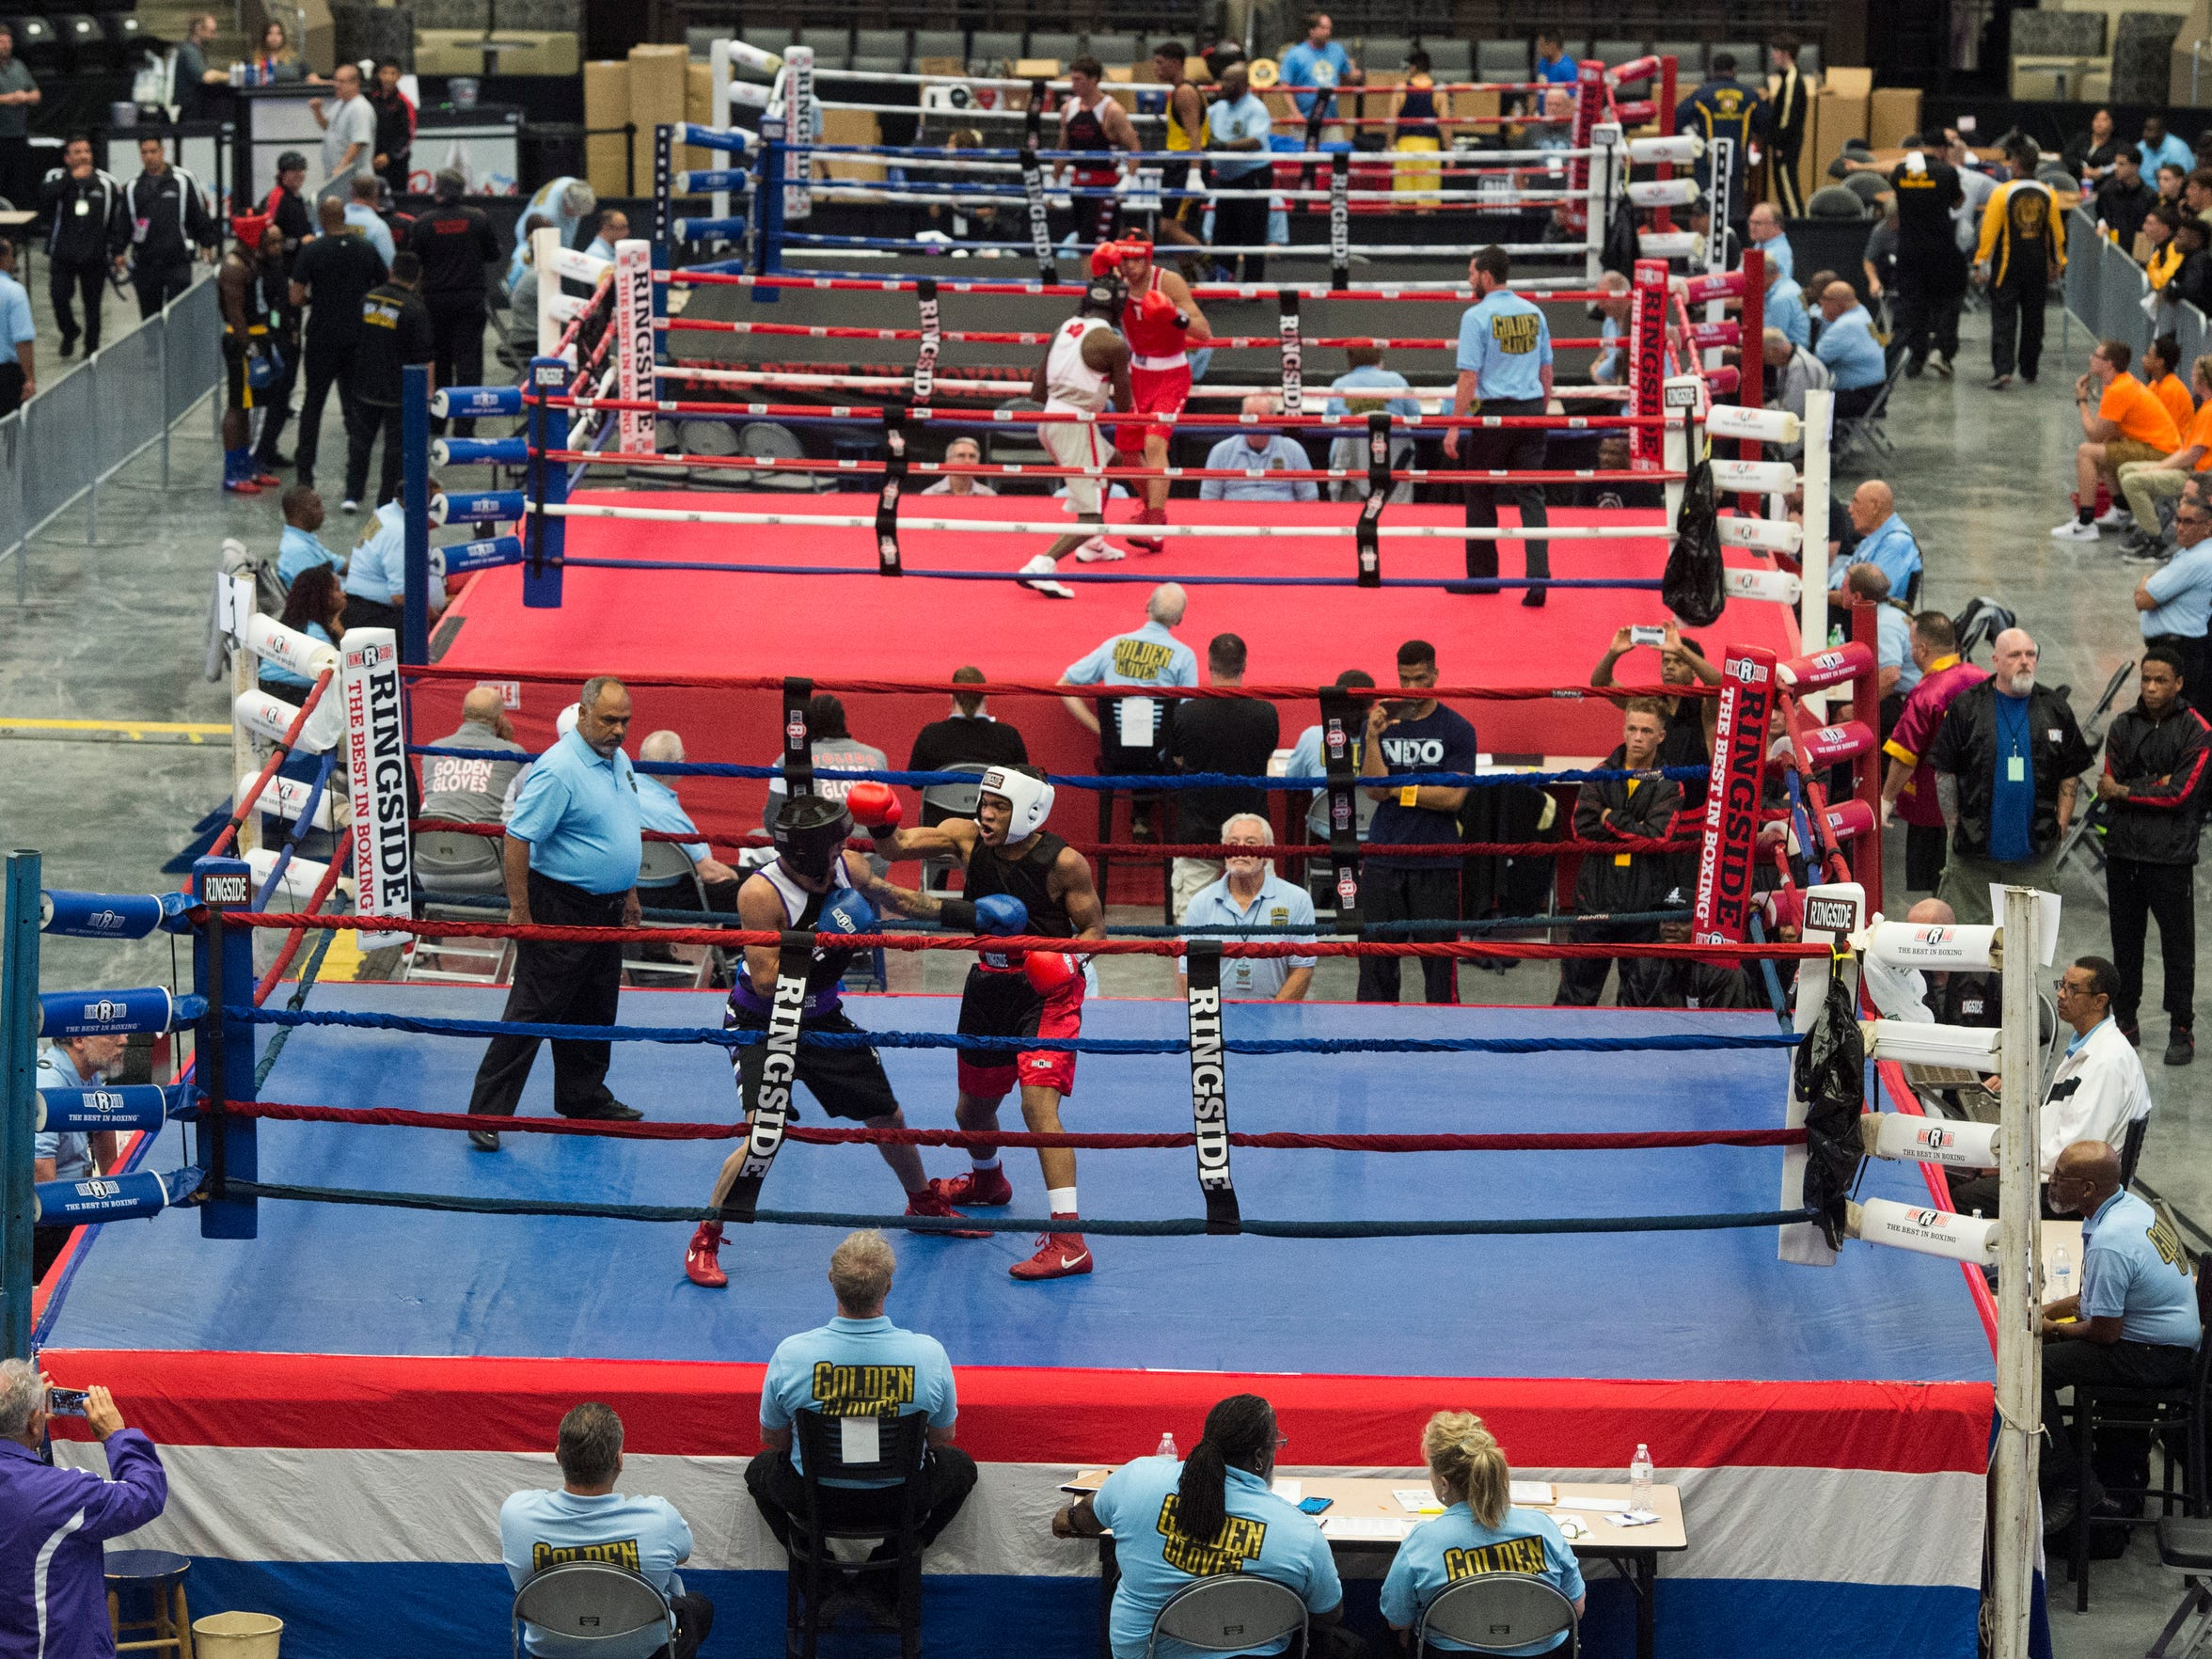 Raymon Henry, front right, fights Cristian De La Rosa in the first round of the 165 lbs division during the National Golden Gloves tournament at the Ralston Arena in Ralston, Neb. on Monday, May 14, 2018. Henry won the fight and lost in the second round to a nationally ranked opponent.